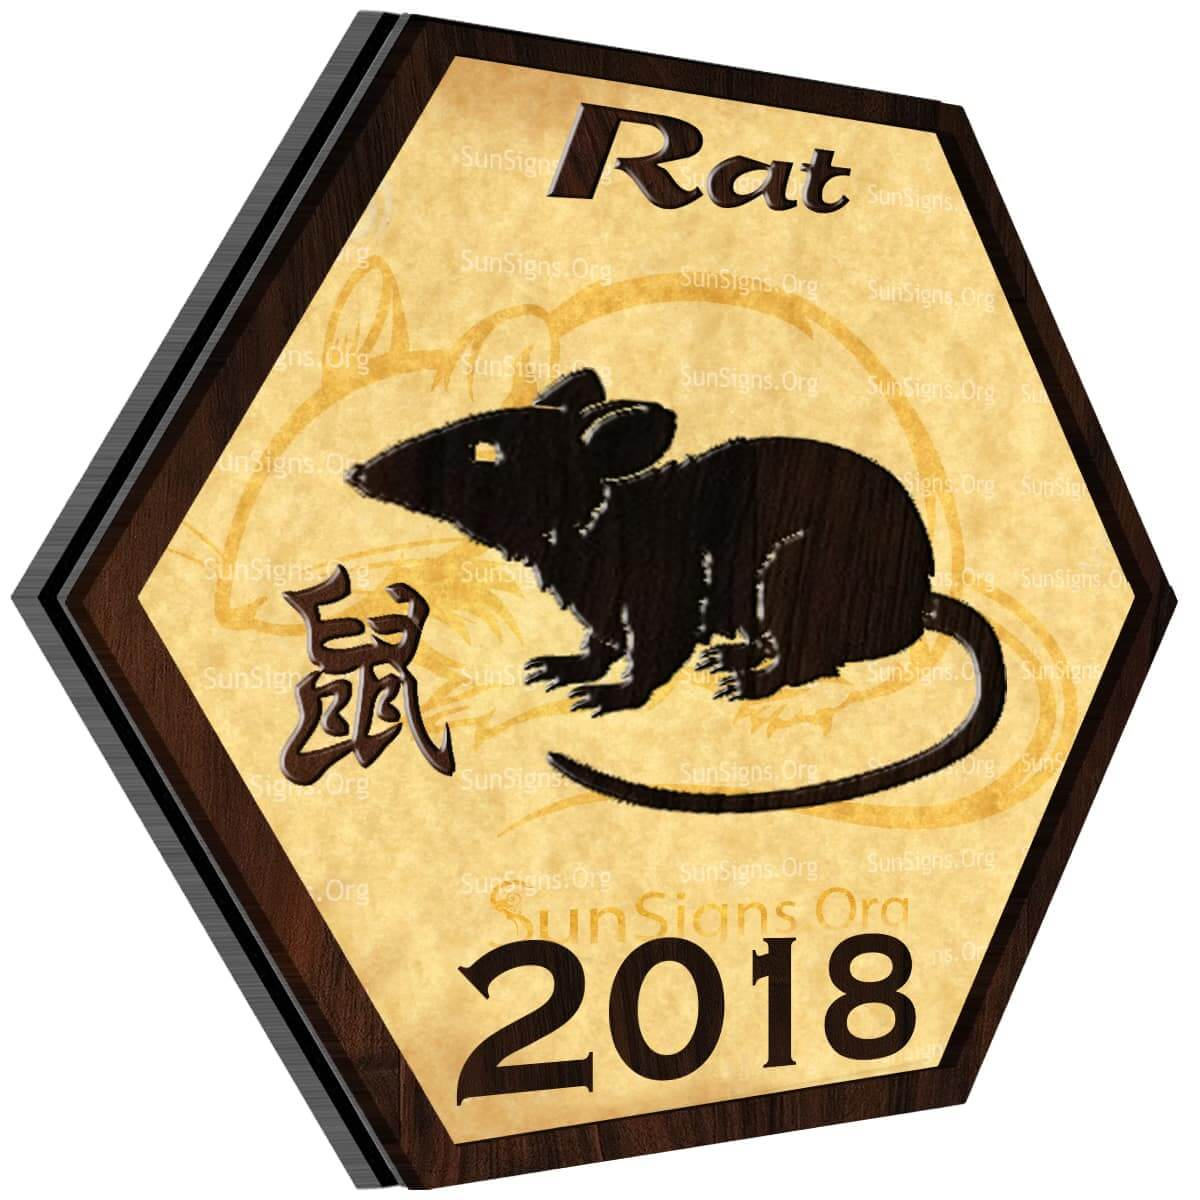 Rat Horoscope 2018 Predictions For Love, Finance, Career, Health And Family